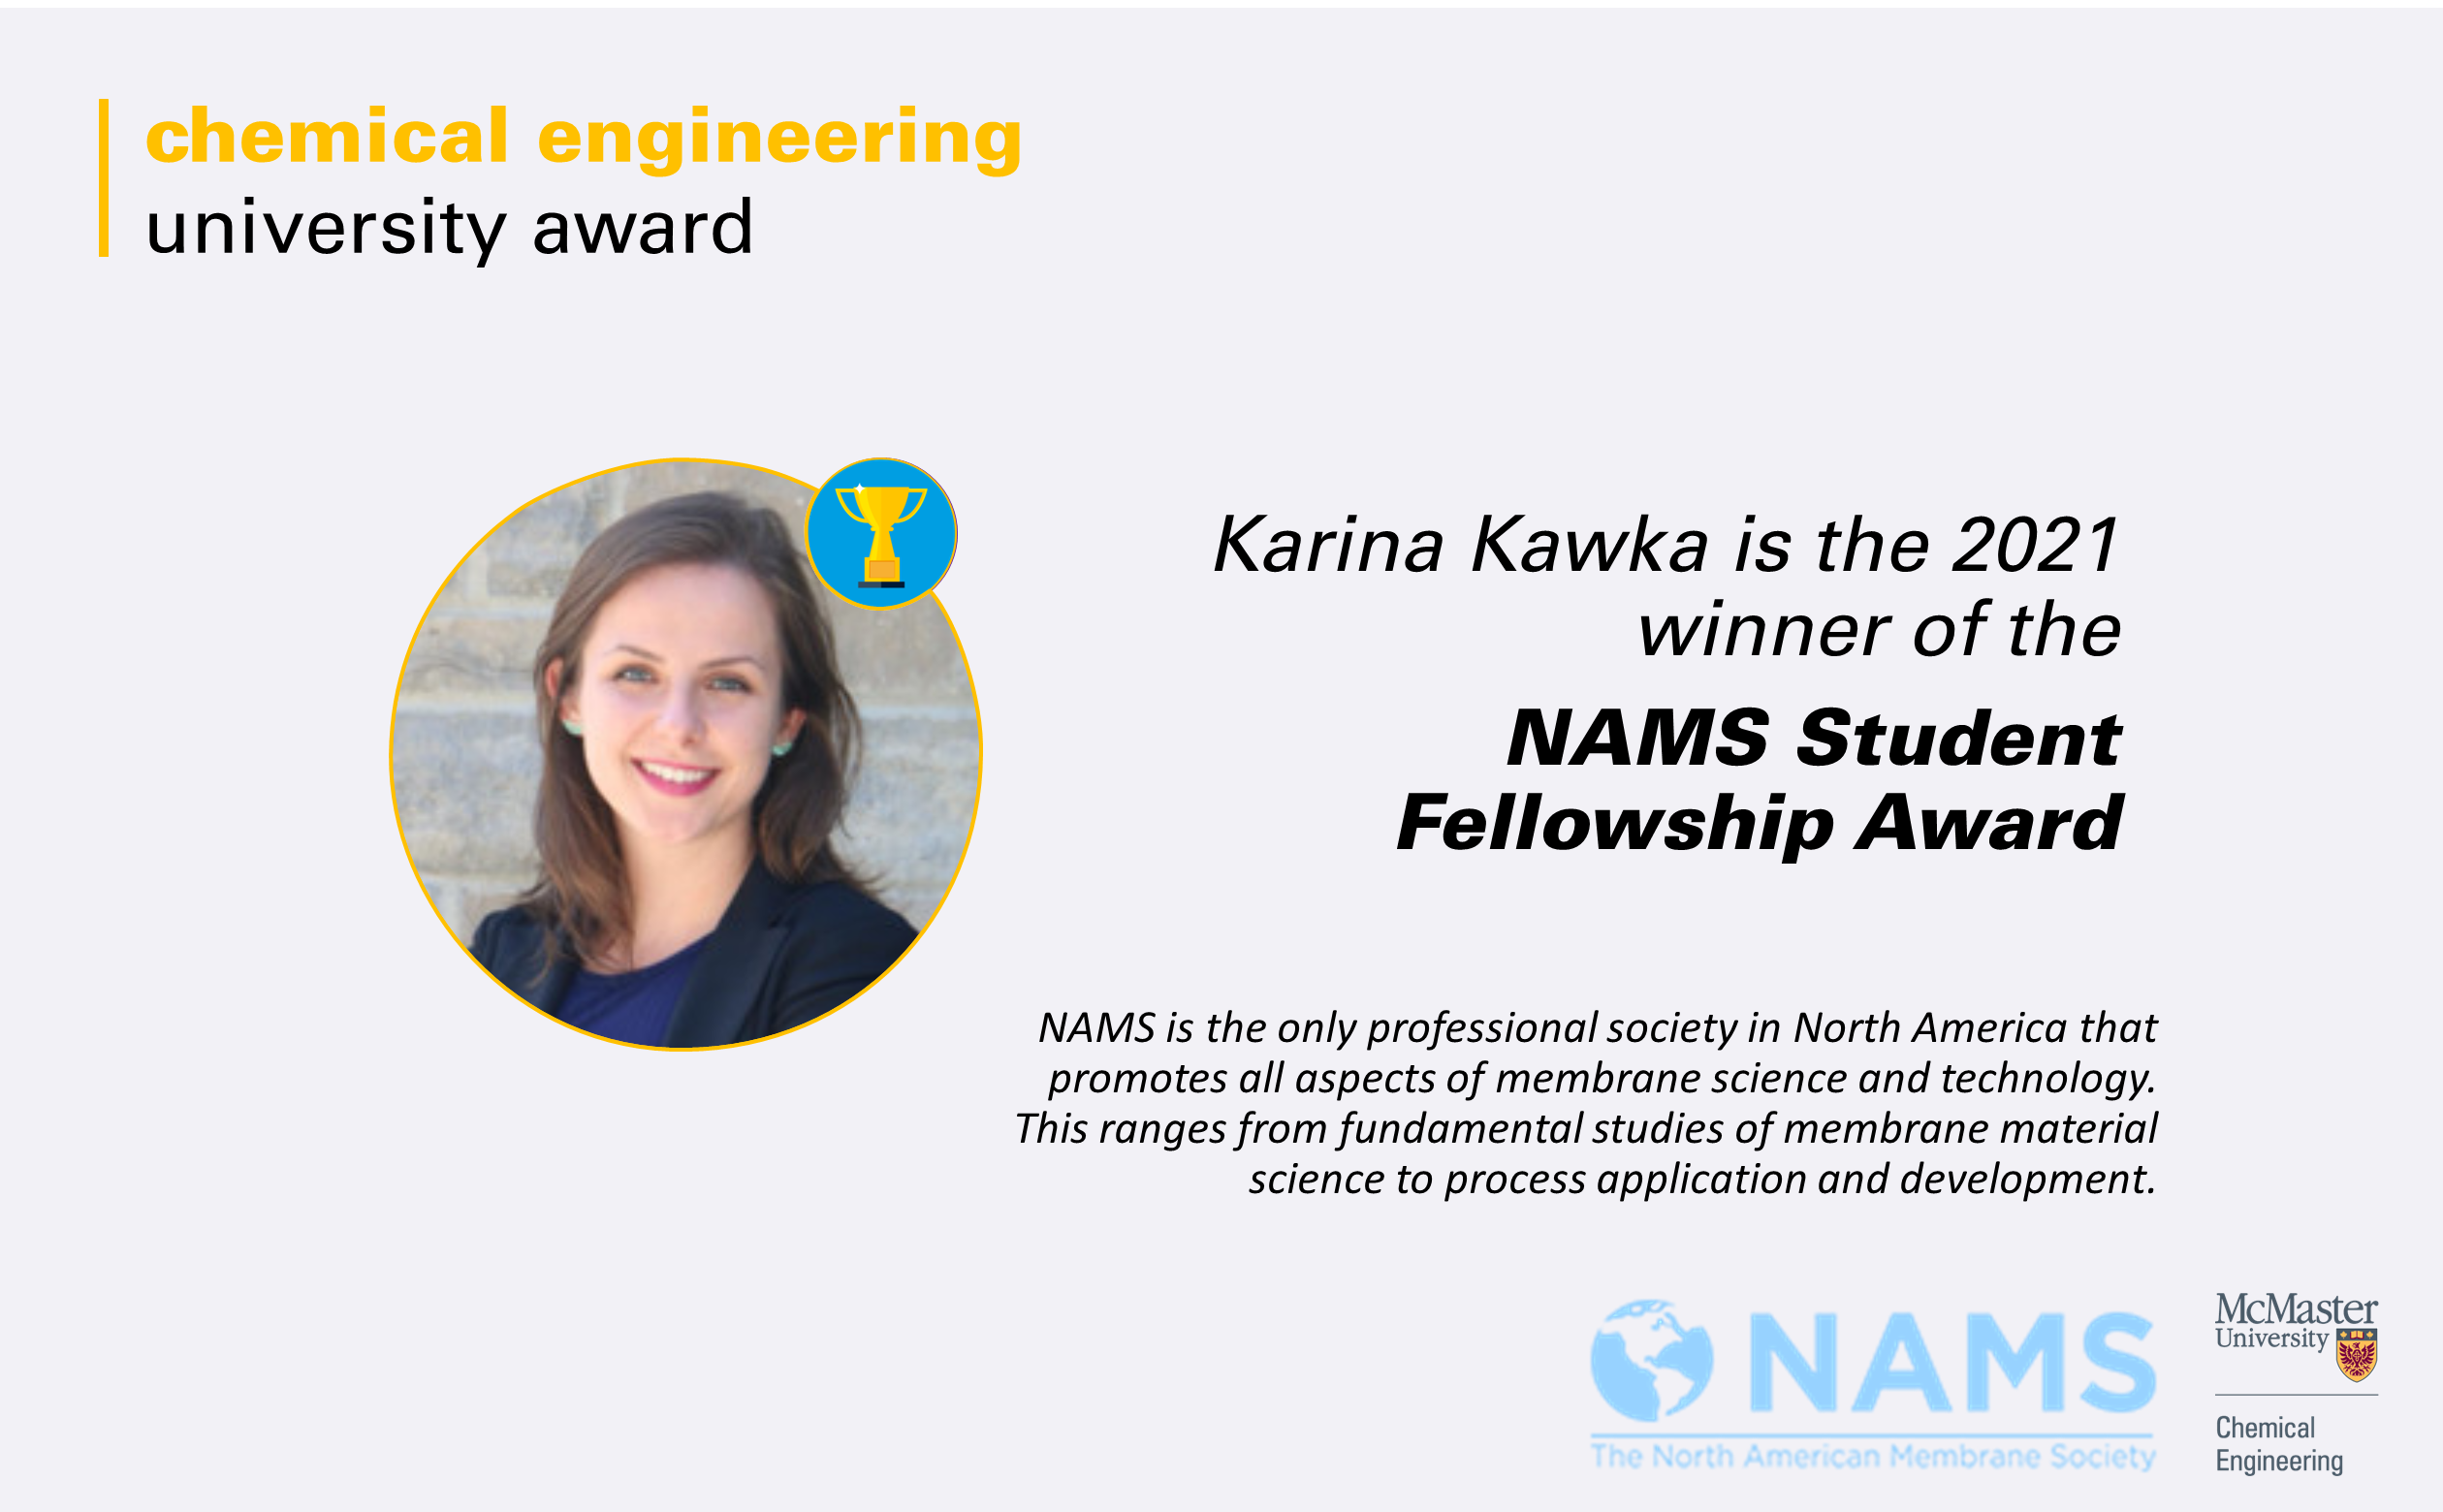 NAMS Student Fellowship Awards